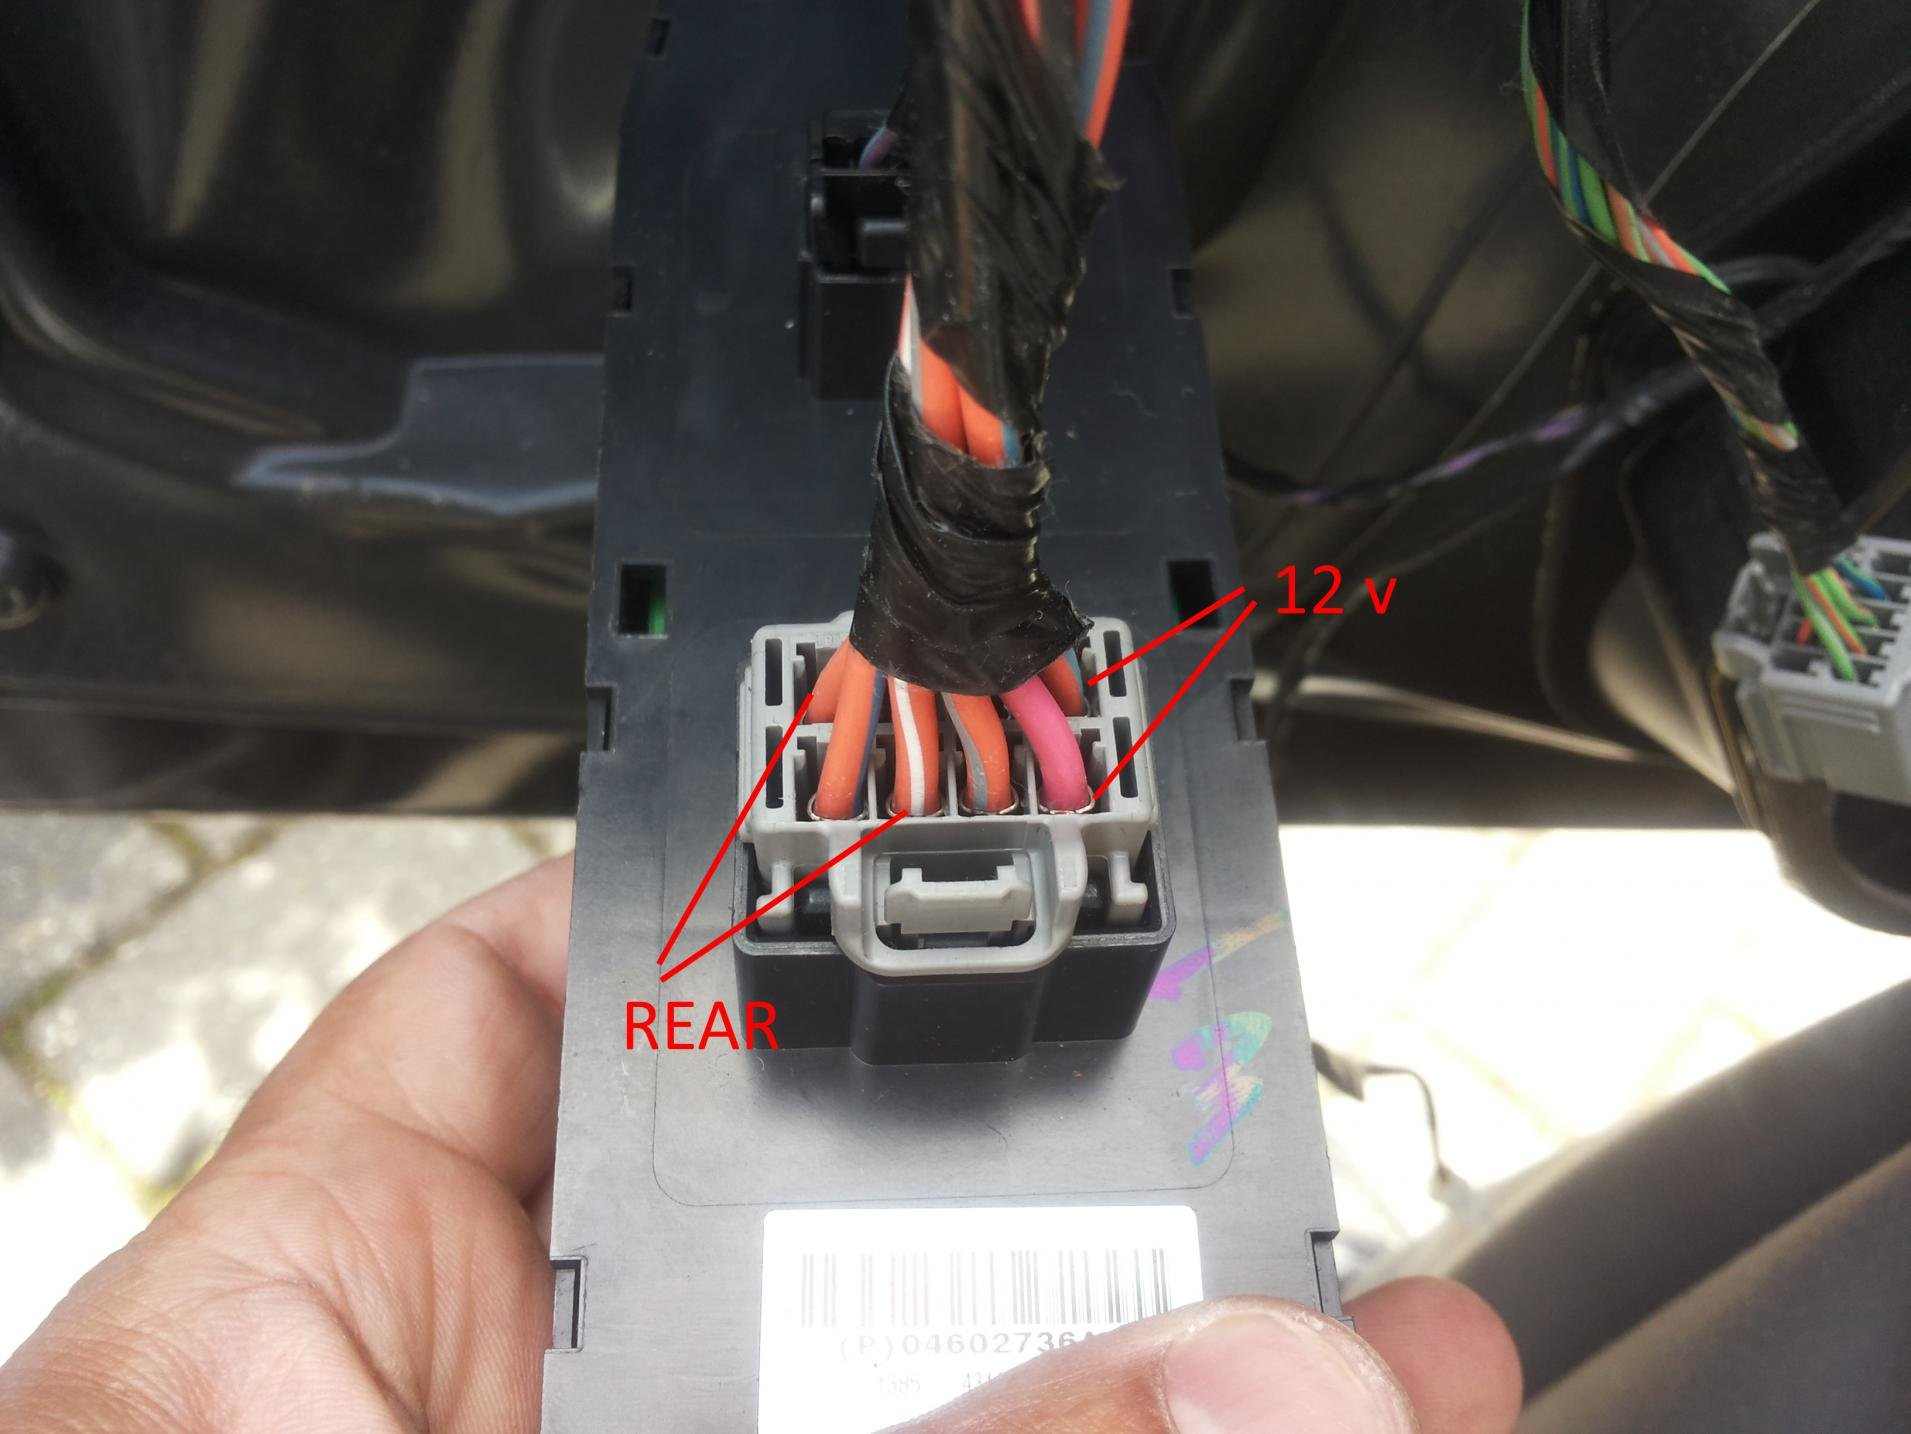 115490d1437327624 power window roll up module attachement1 power window roll up module chrysler 300c forum 300c & srt8 forums  at reclaimingppi.co